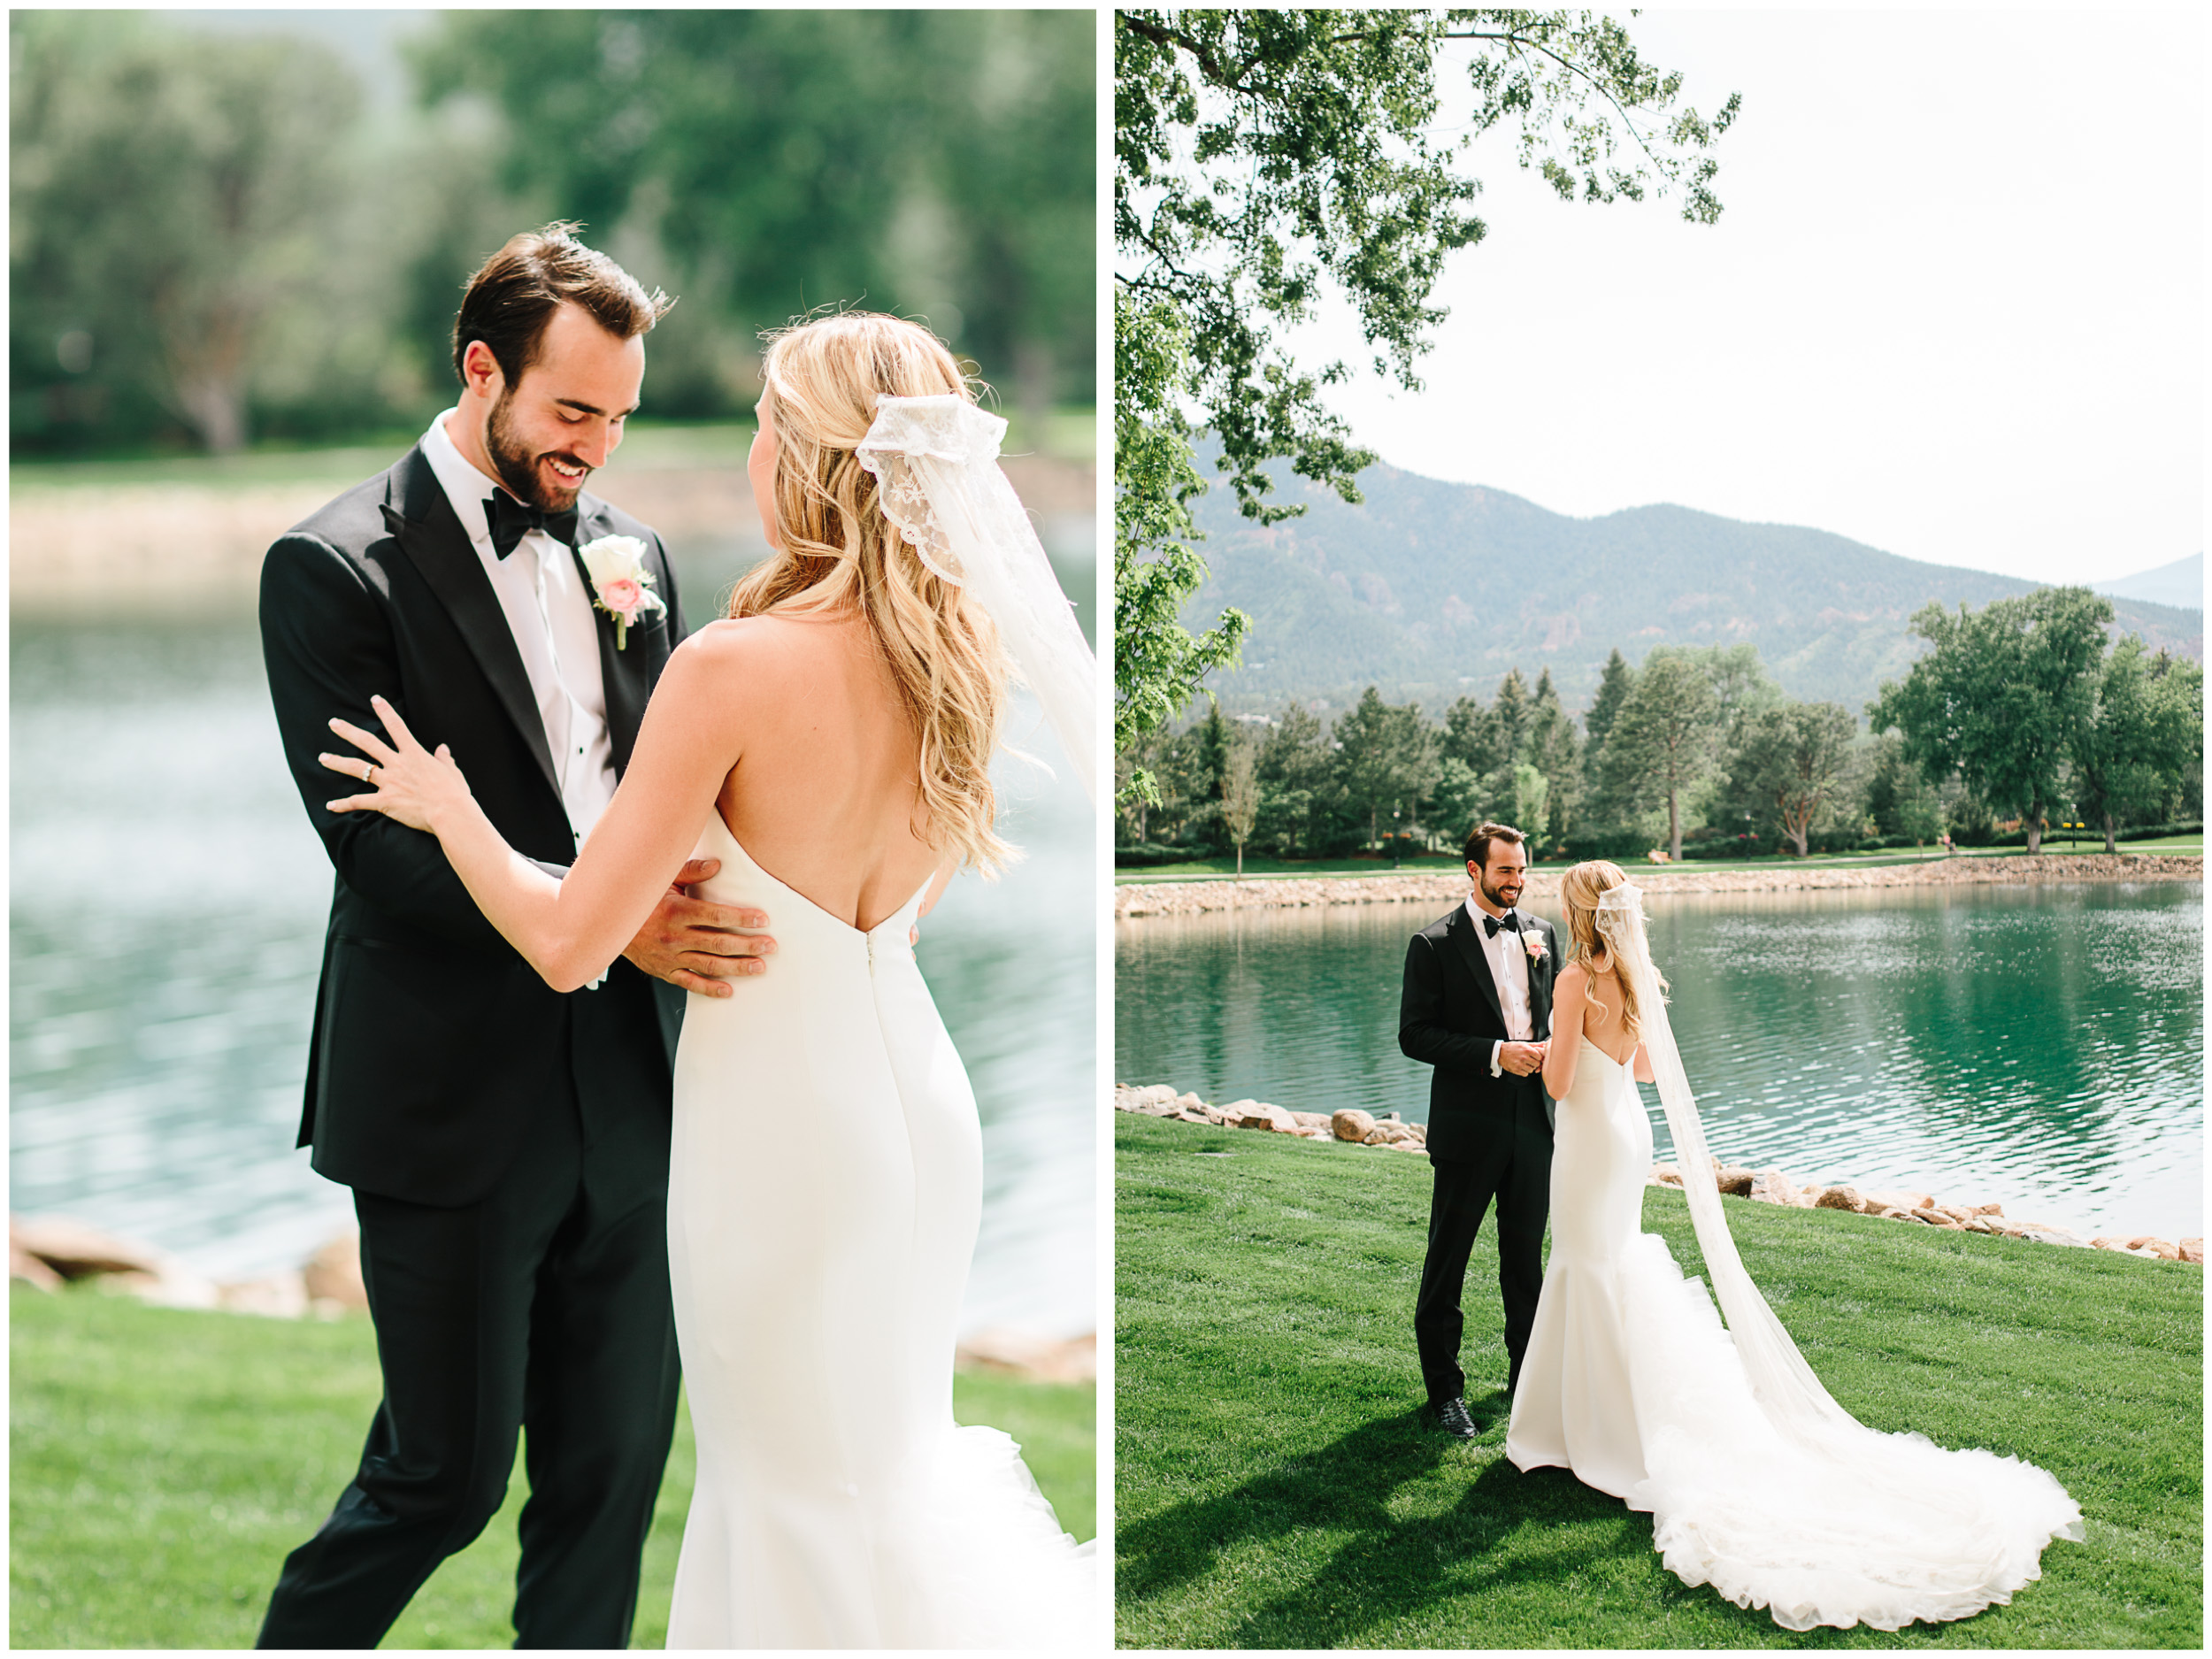 broadmoor_wedding_23.jpg